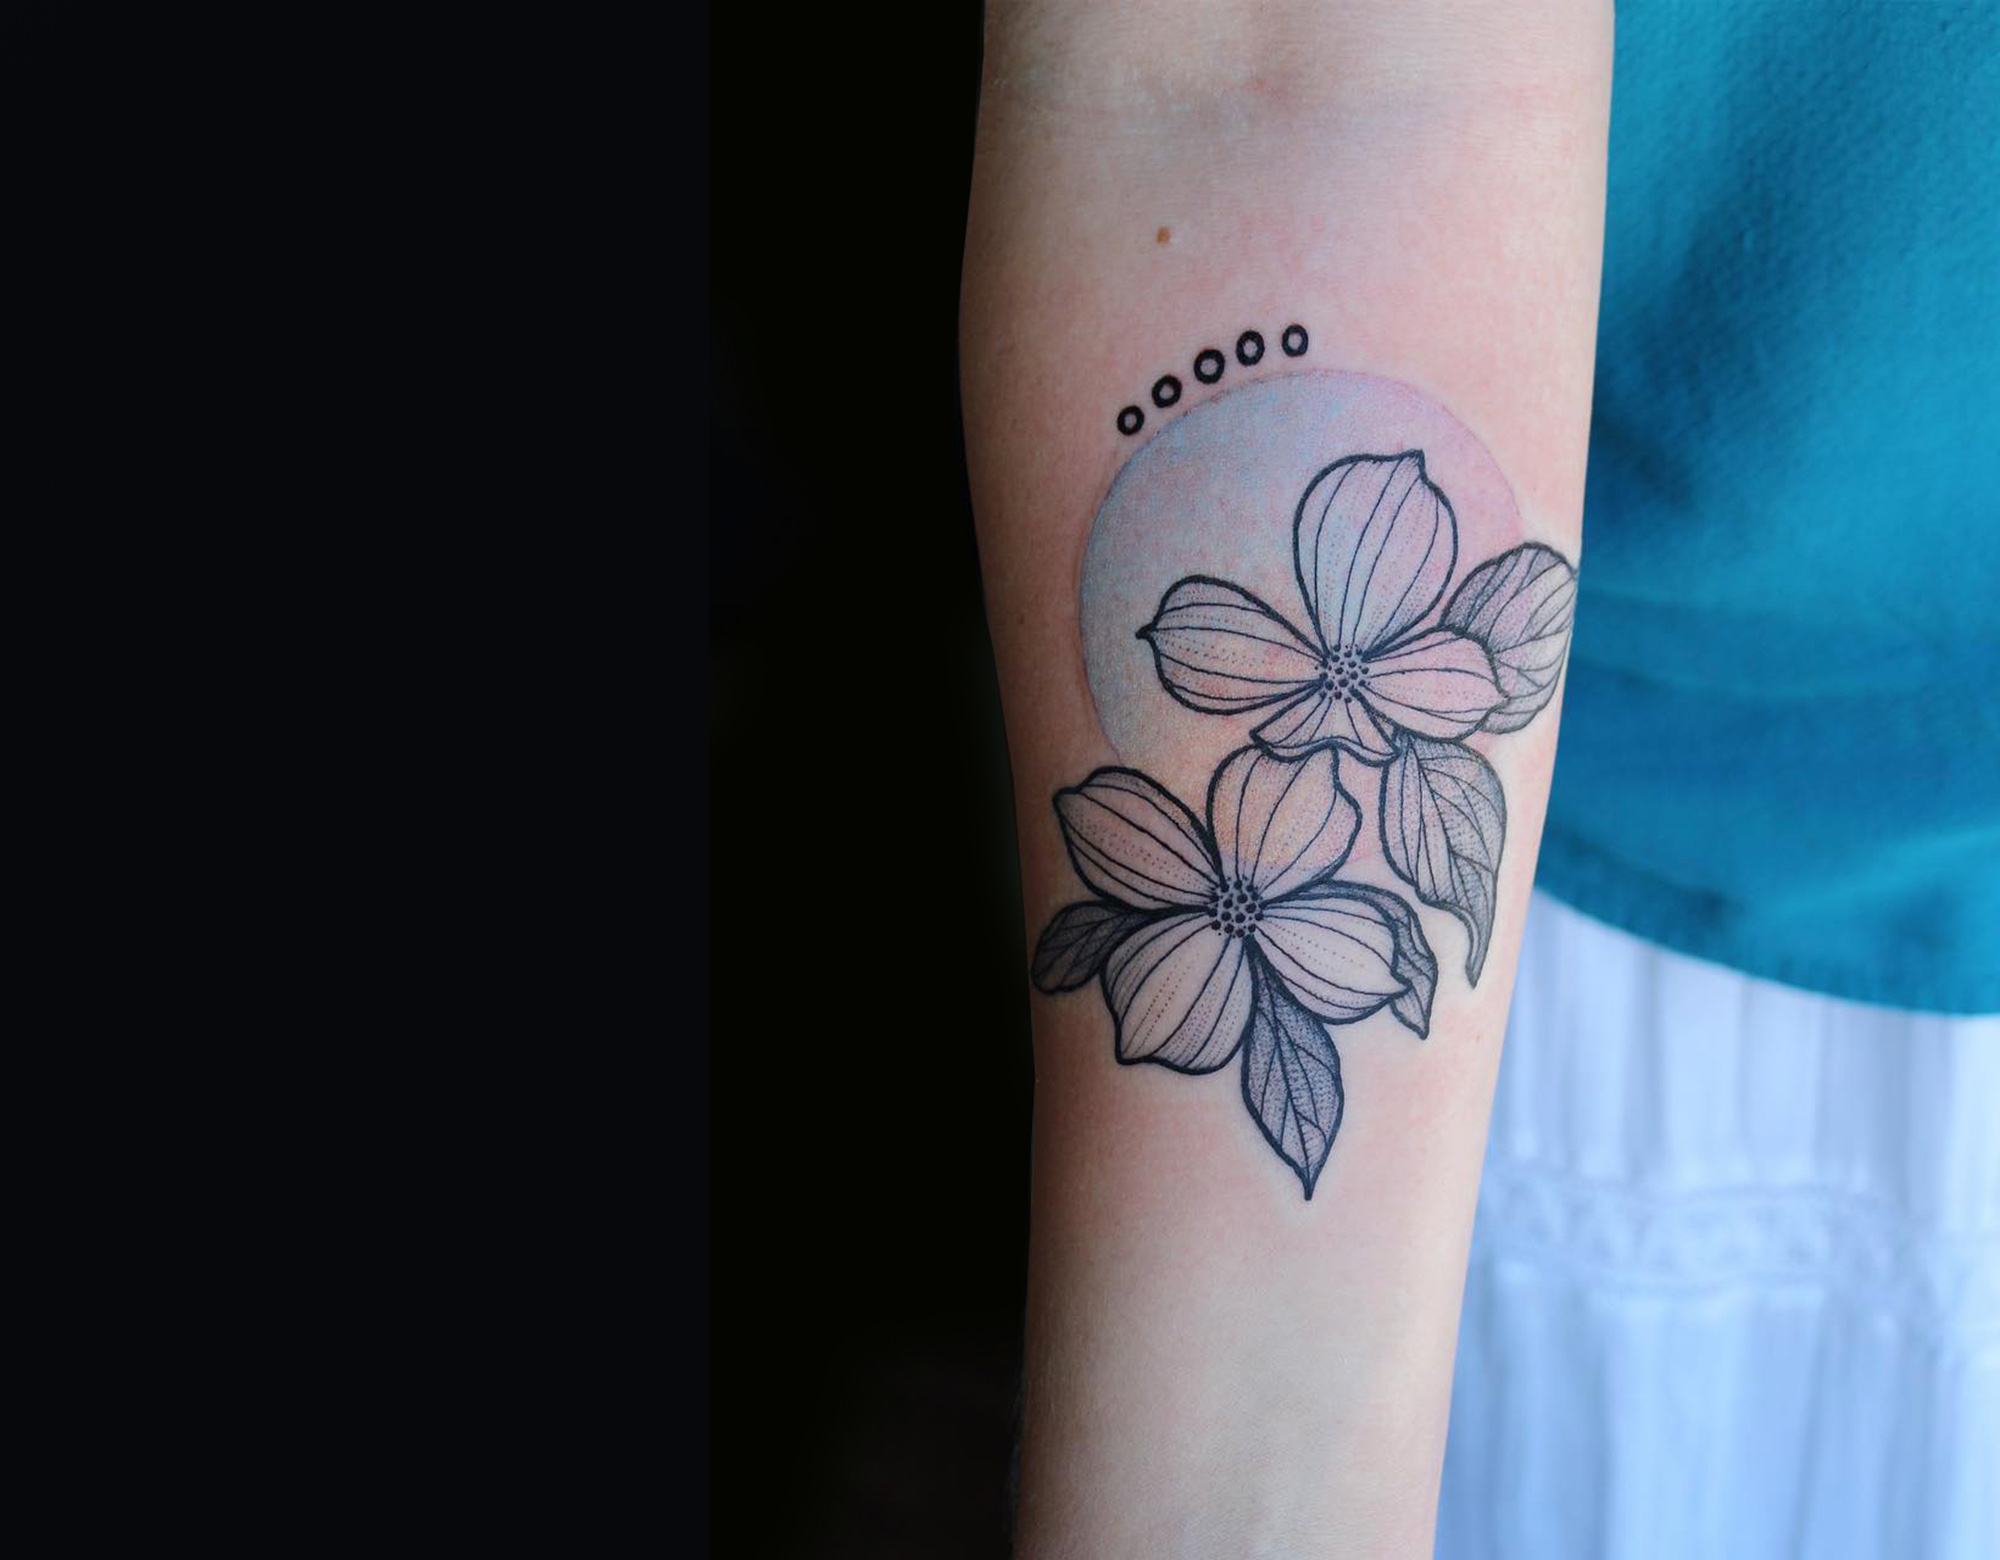 Delicate Nature Tattoos that Empower by Emily Kaul